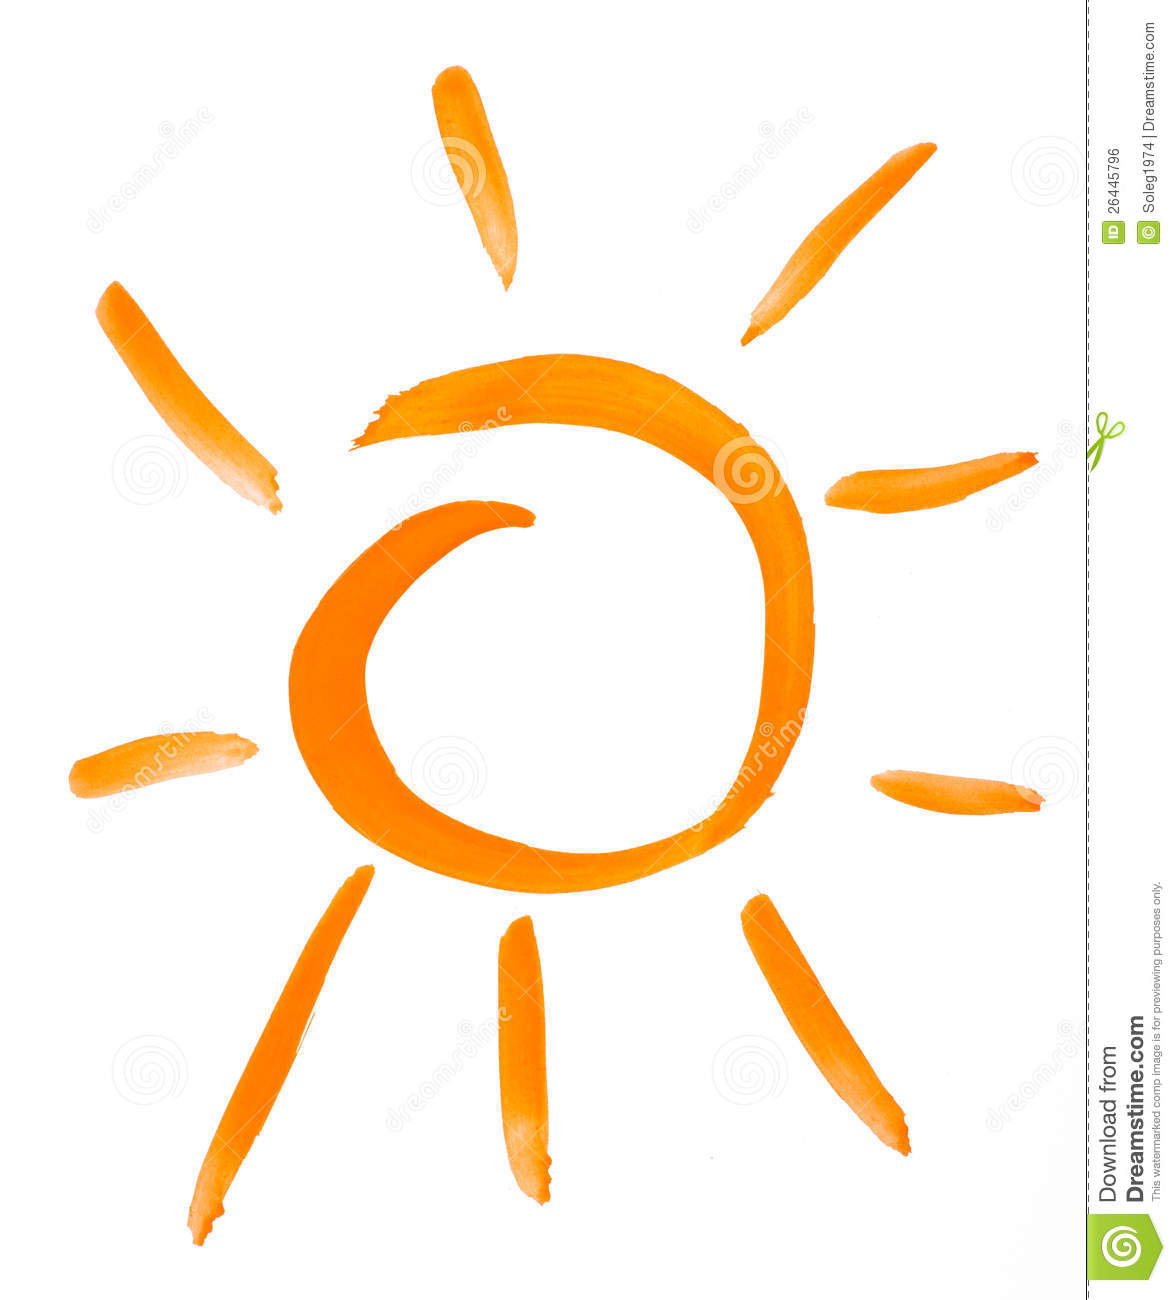 Sun Flower Drawing How To Draw A Sunflower Draw Central in addition Royalty Free Stock Image Sun Watercolor Drawing Paper Image26445796 also D Va Overwatch Promo 618472750 also Daisy Drawings moreover Watch. on realistic sketches